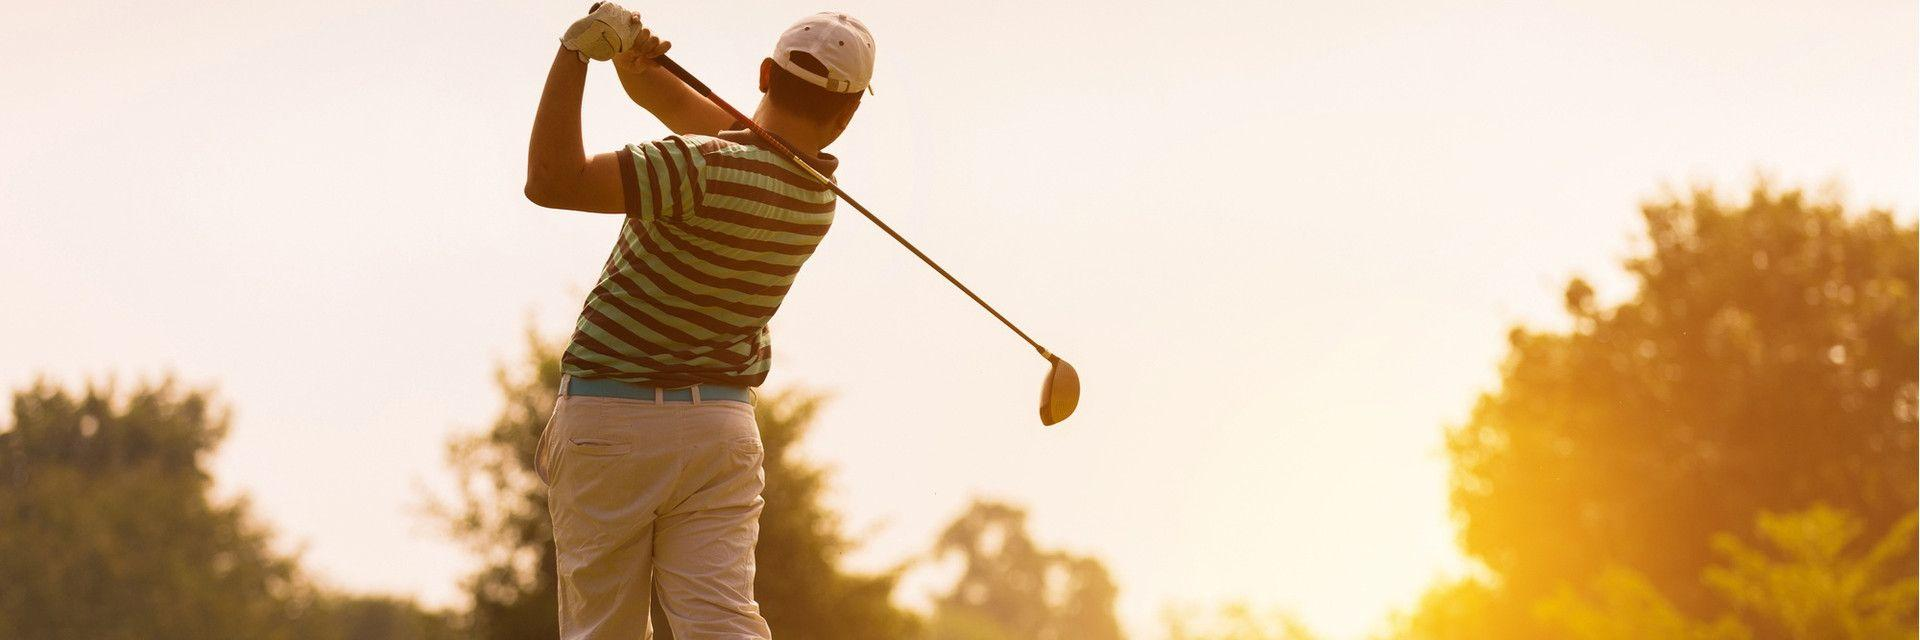 Fore! How to Avoid Back Pain from Your Golf Swing | Rothman